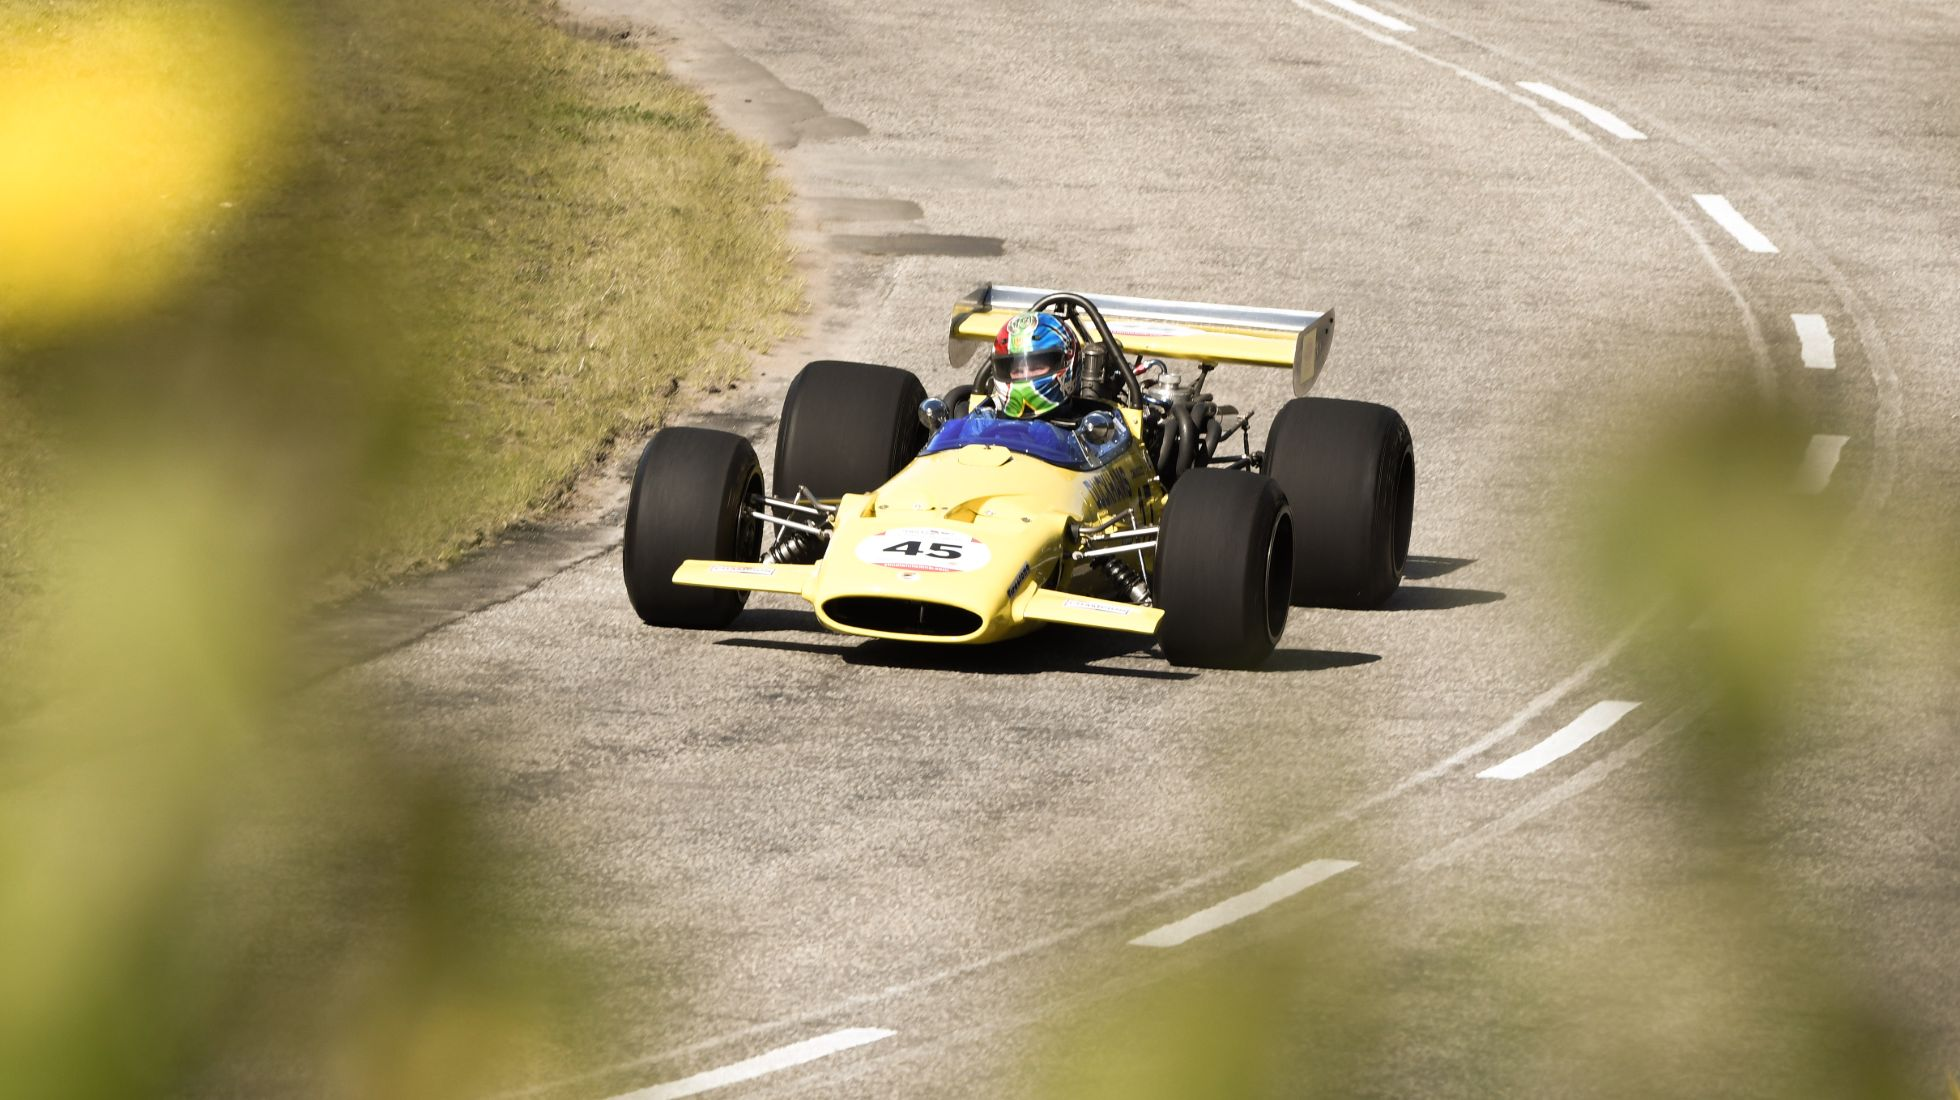 With the dust all but settled after the 11th running of the Simola Hillclimb, we sit down with the man behind it all, Ian Shrosbree, to talk about the business of motorsport.